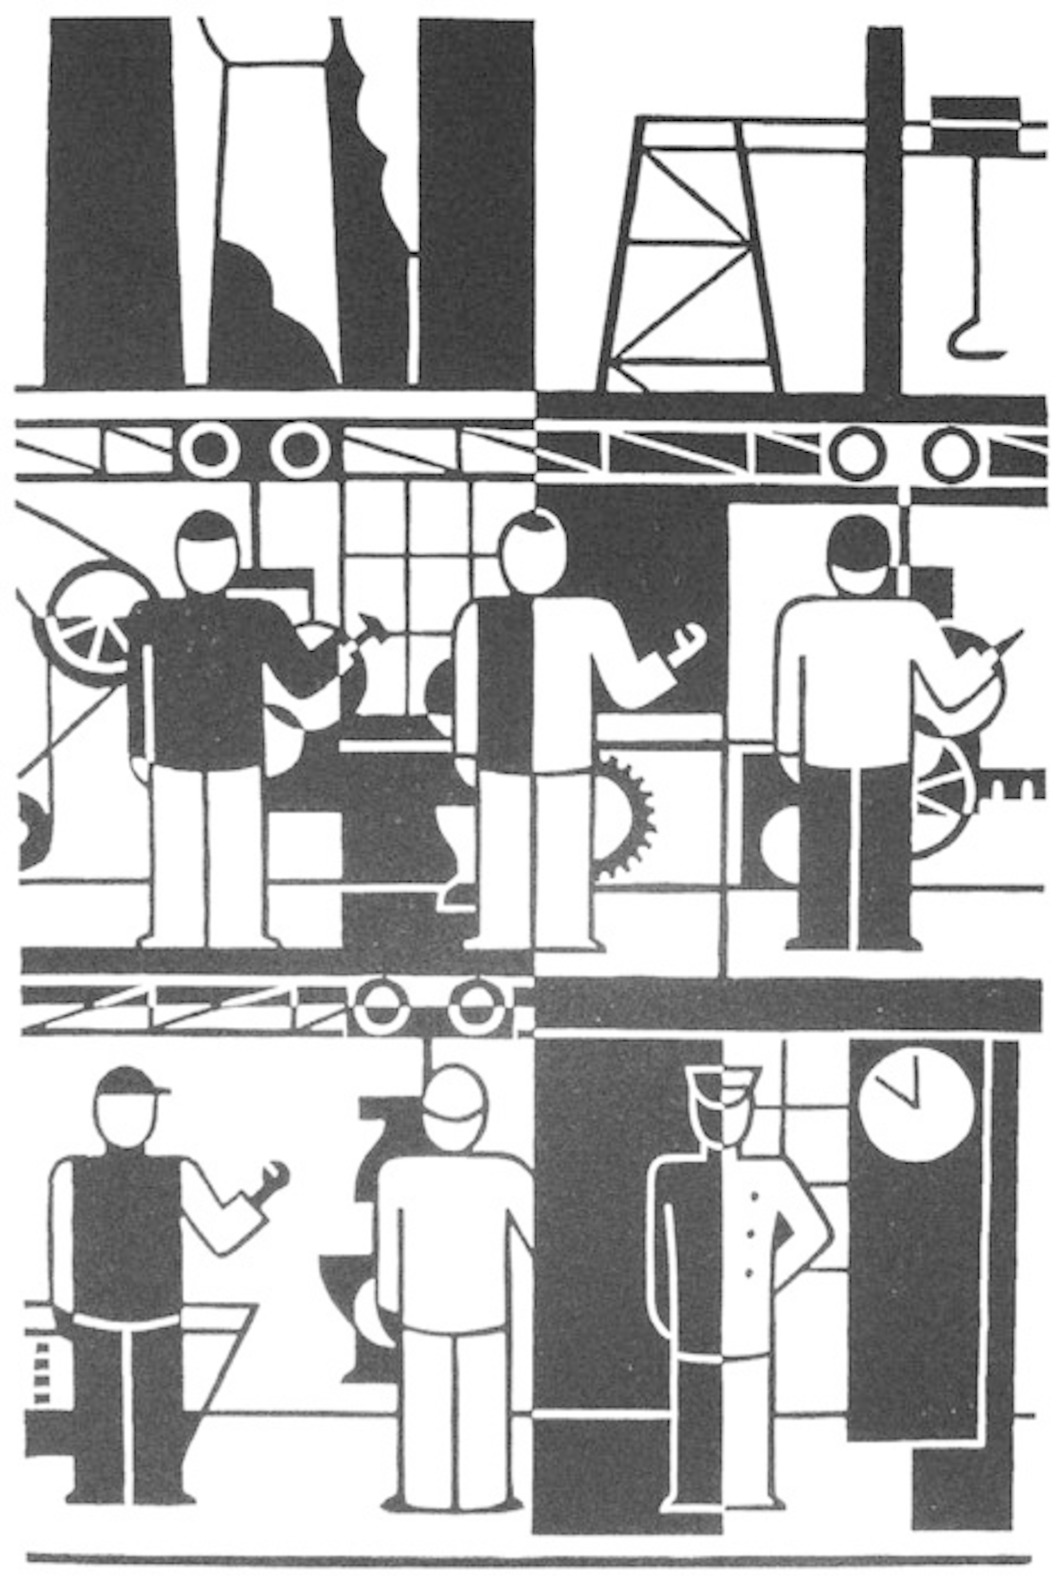 "Gerd Arntz, Fabrik (Factory), 1927, woodcut on card, 17 x 12 7/8"". From the series ""12 Häuser der Zeit"" (12 Houses of the Time), 1927."